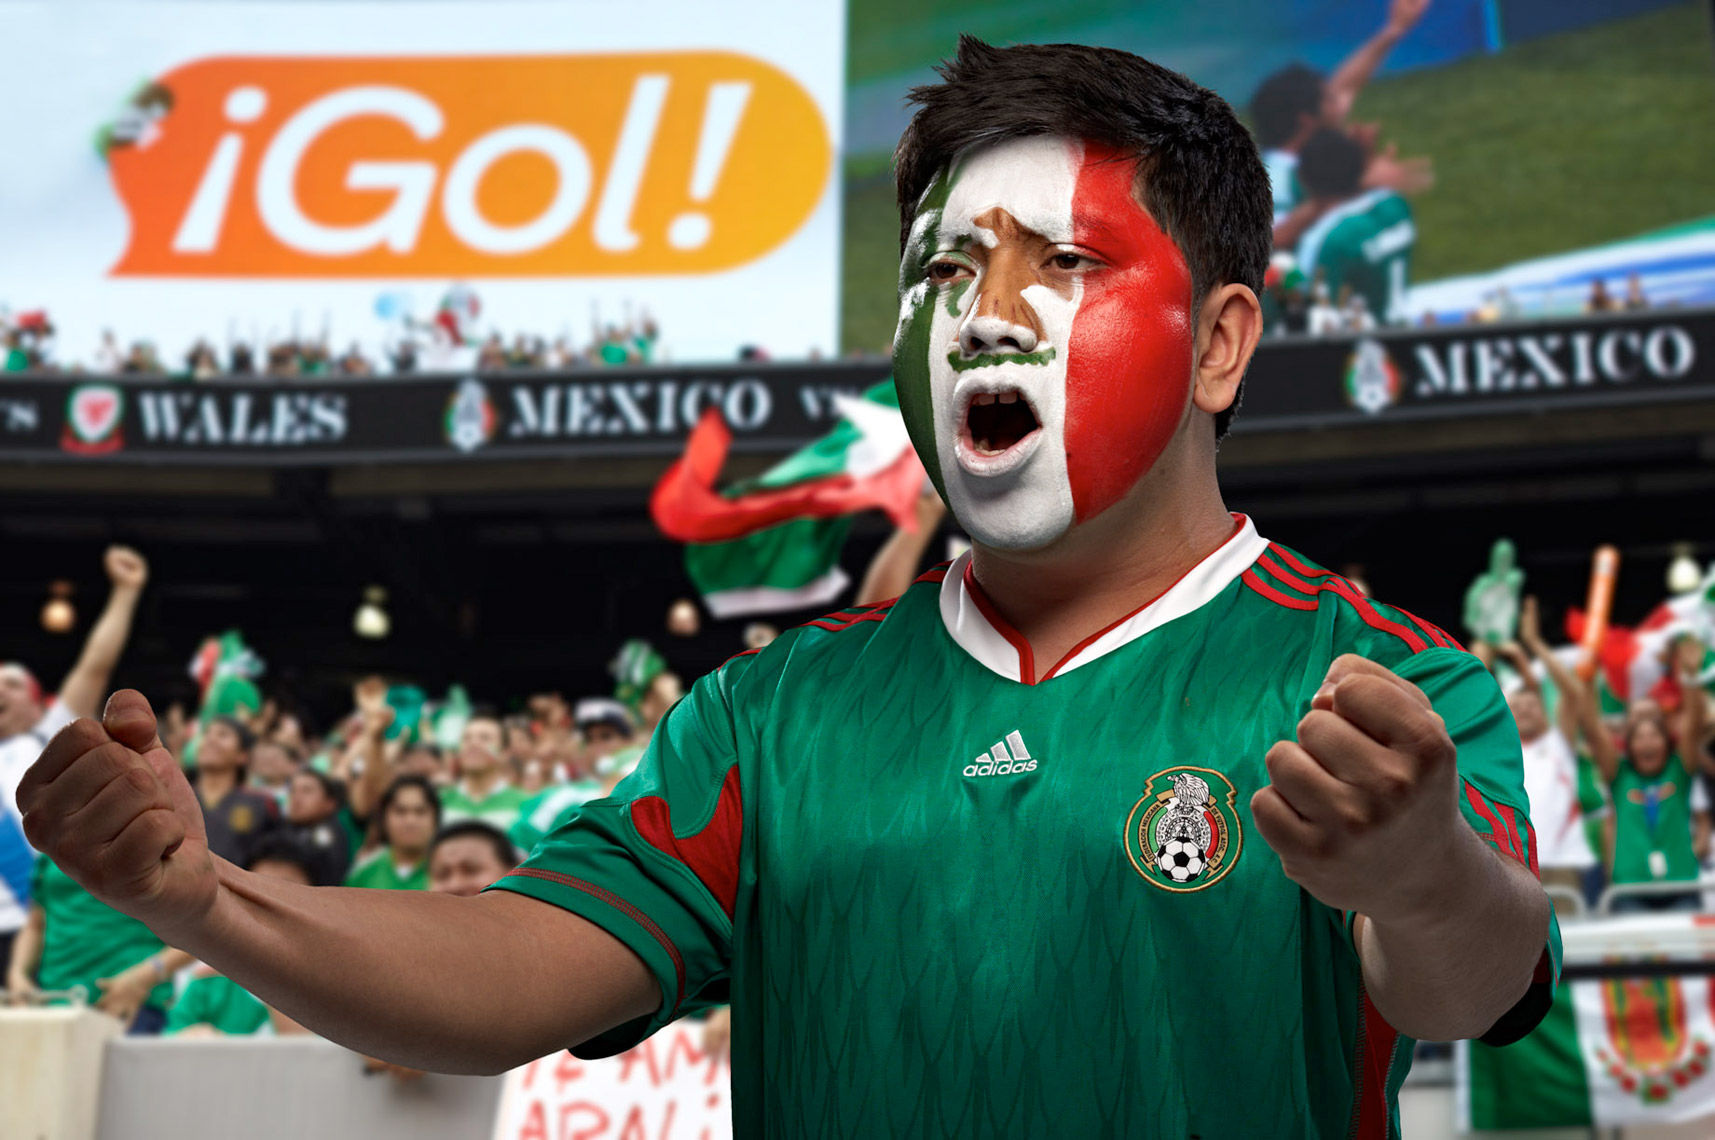 Mexico futbol soccer fan face paint photo by Monte Isom